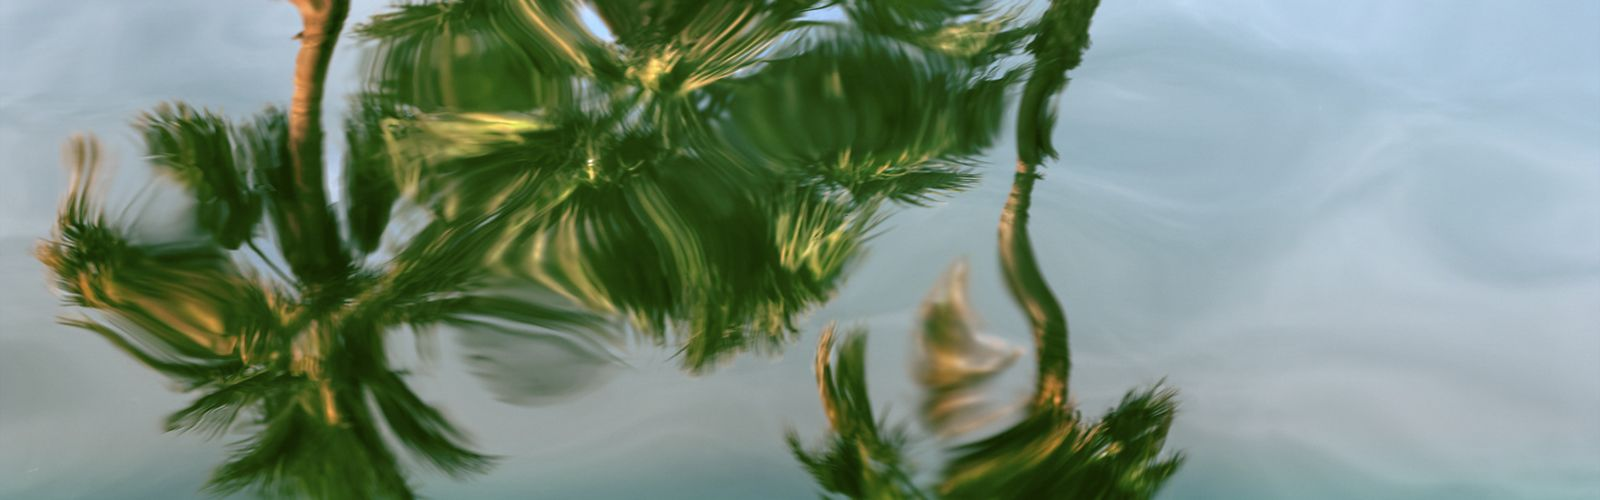 I took this picture white palm trees in Palm Springs in this spring.